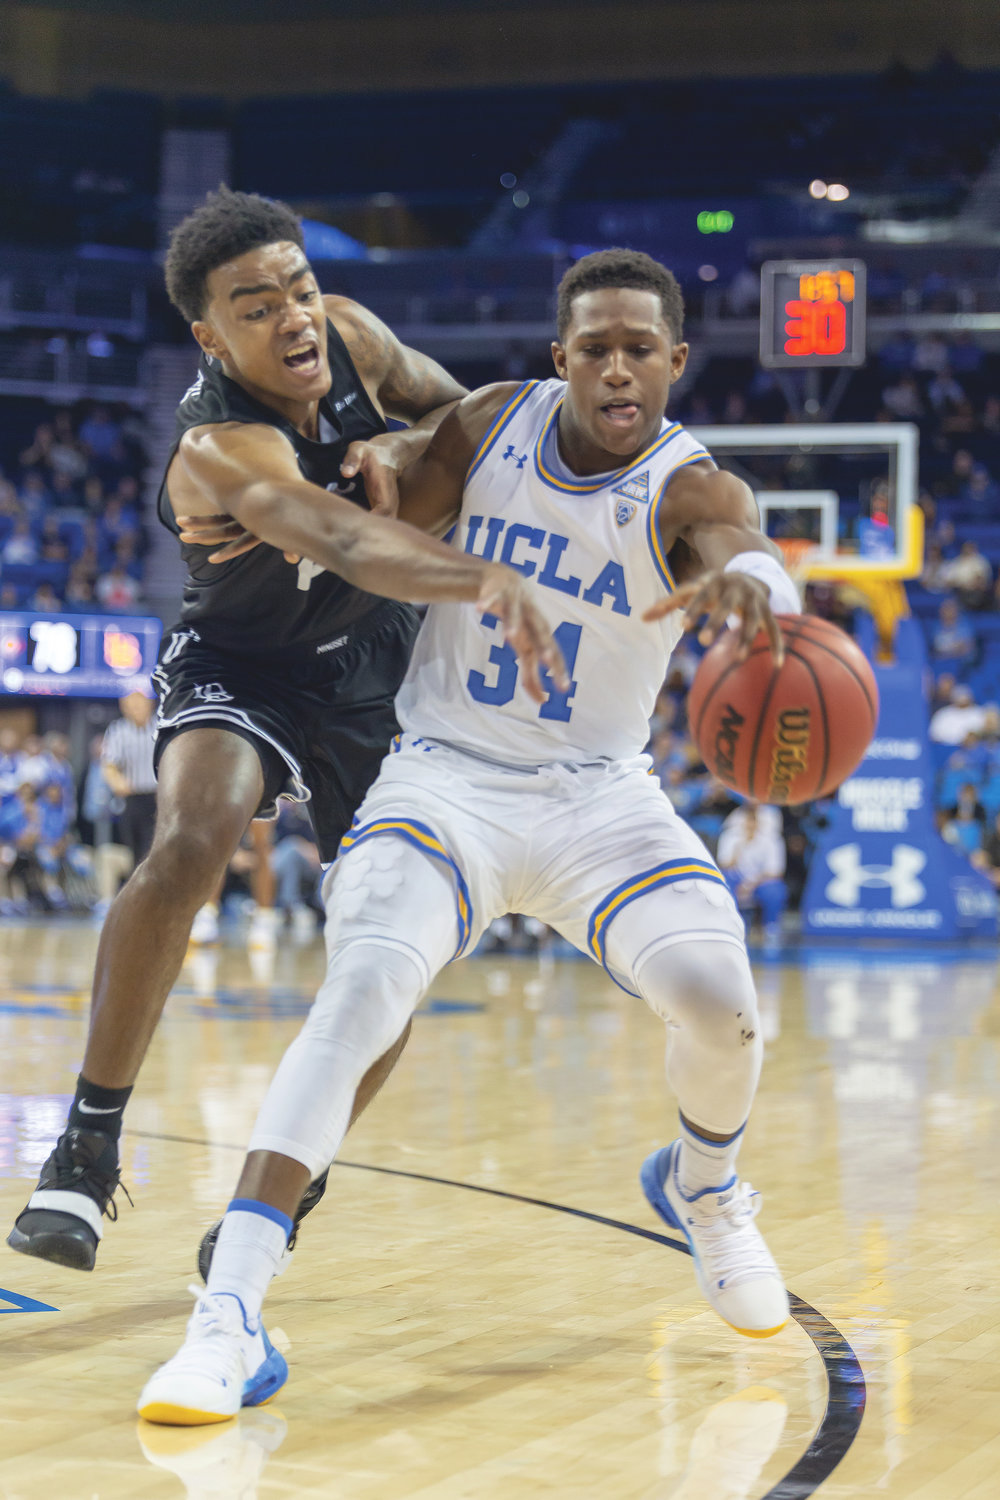 Former Bishop Montgomery and current UCLA freshman guard David Singleton (right) fends off Long Beach State sophomore Jordan Roberts (left). The Bruins went on to win 91-80 Friday night in Pauly Pavilion. (Lenny Washington/@Ucla Housing photo)